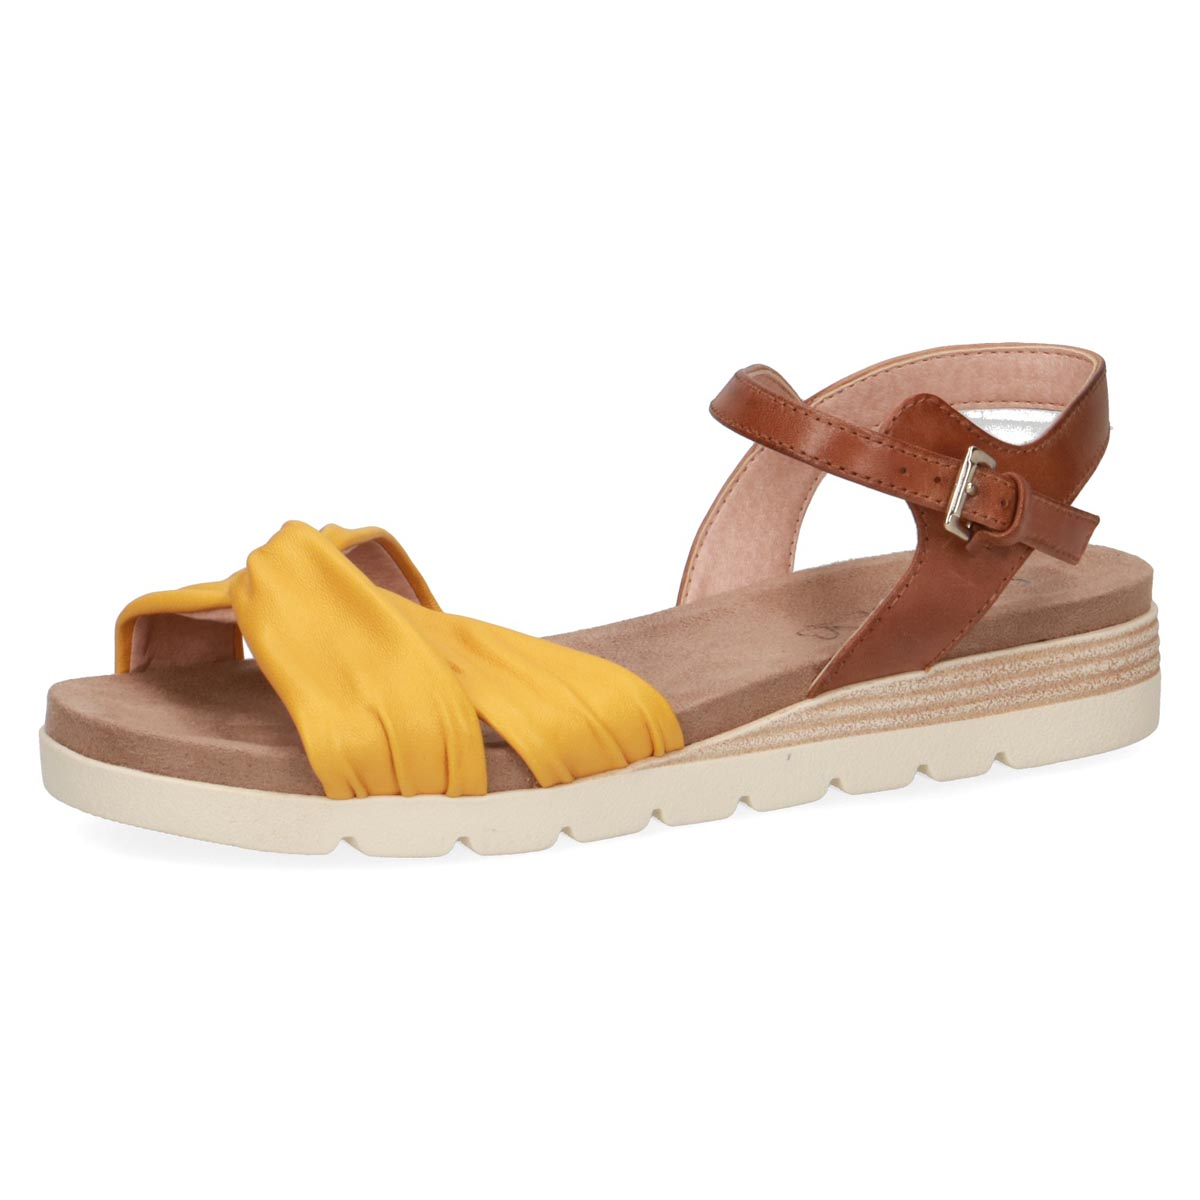 Caprice - Beatrice 2 Yellow and Tan Summer Sandal